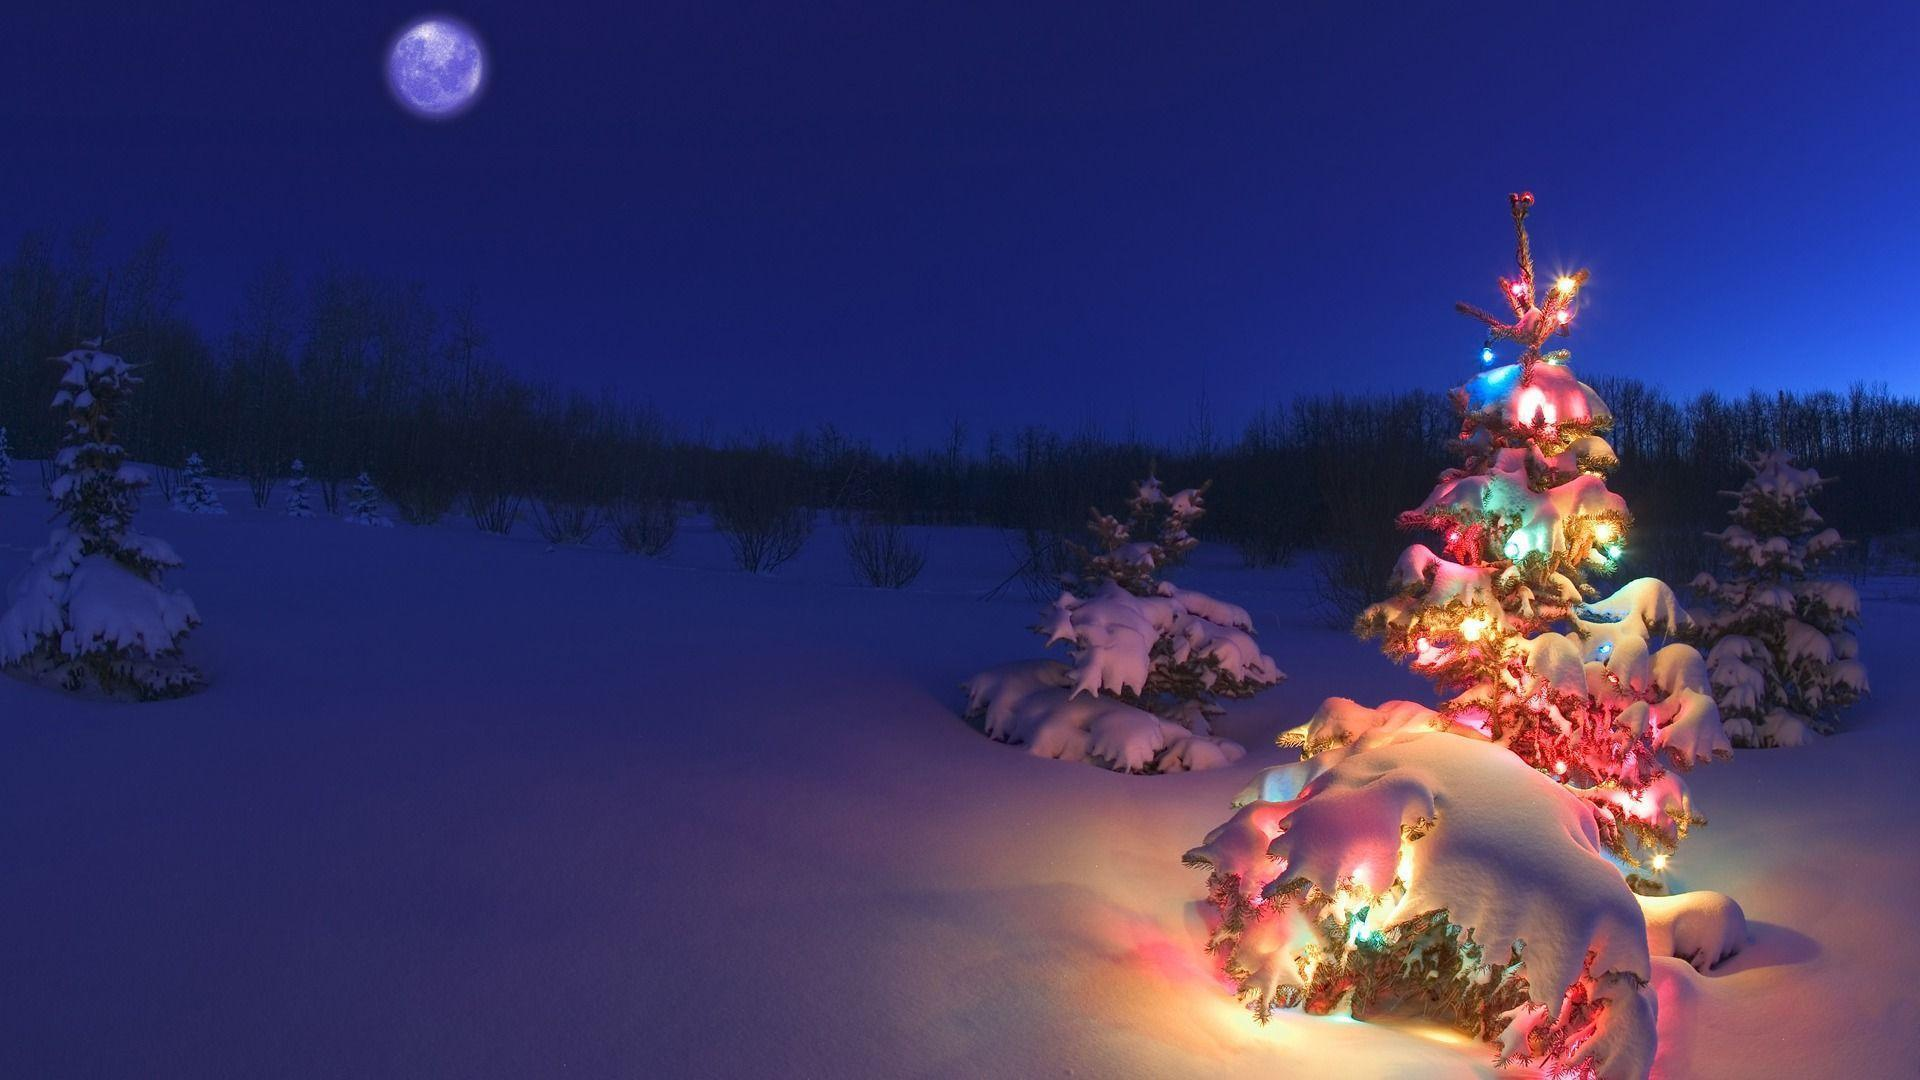 Christmas Wallpapers 1920x1080 - Wallpaper Cave